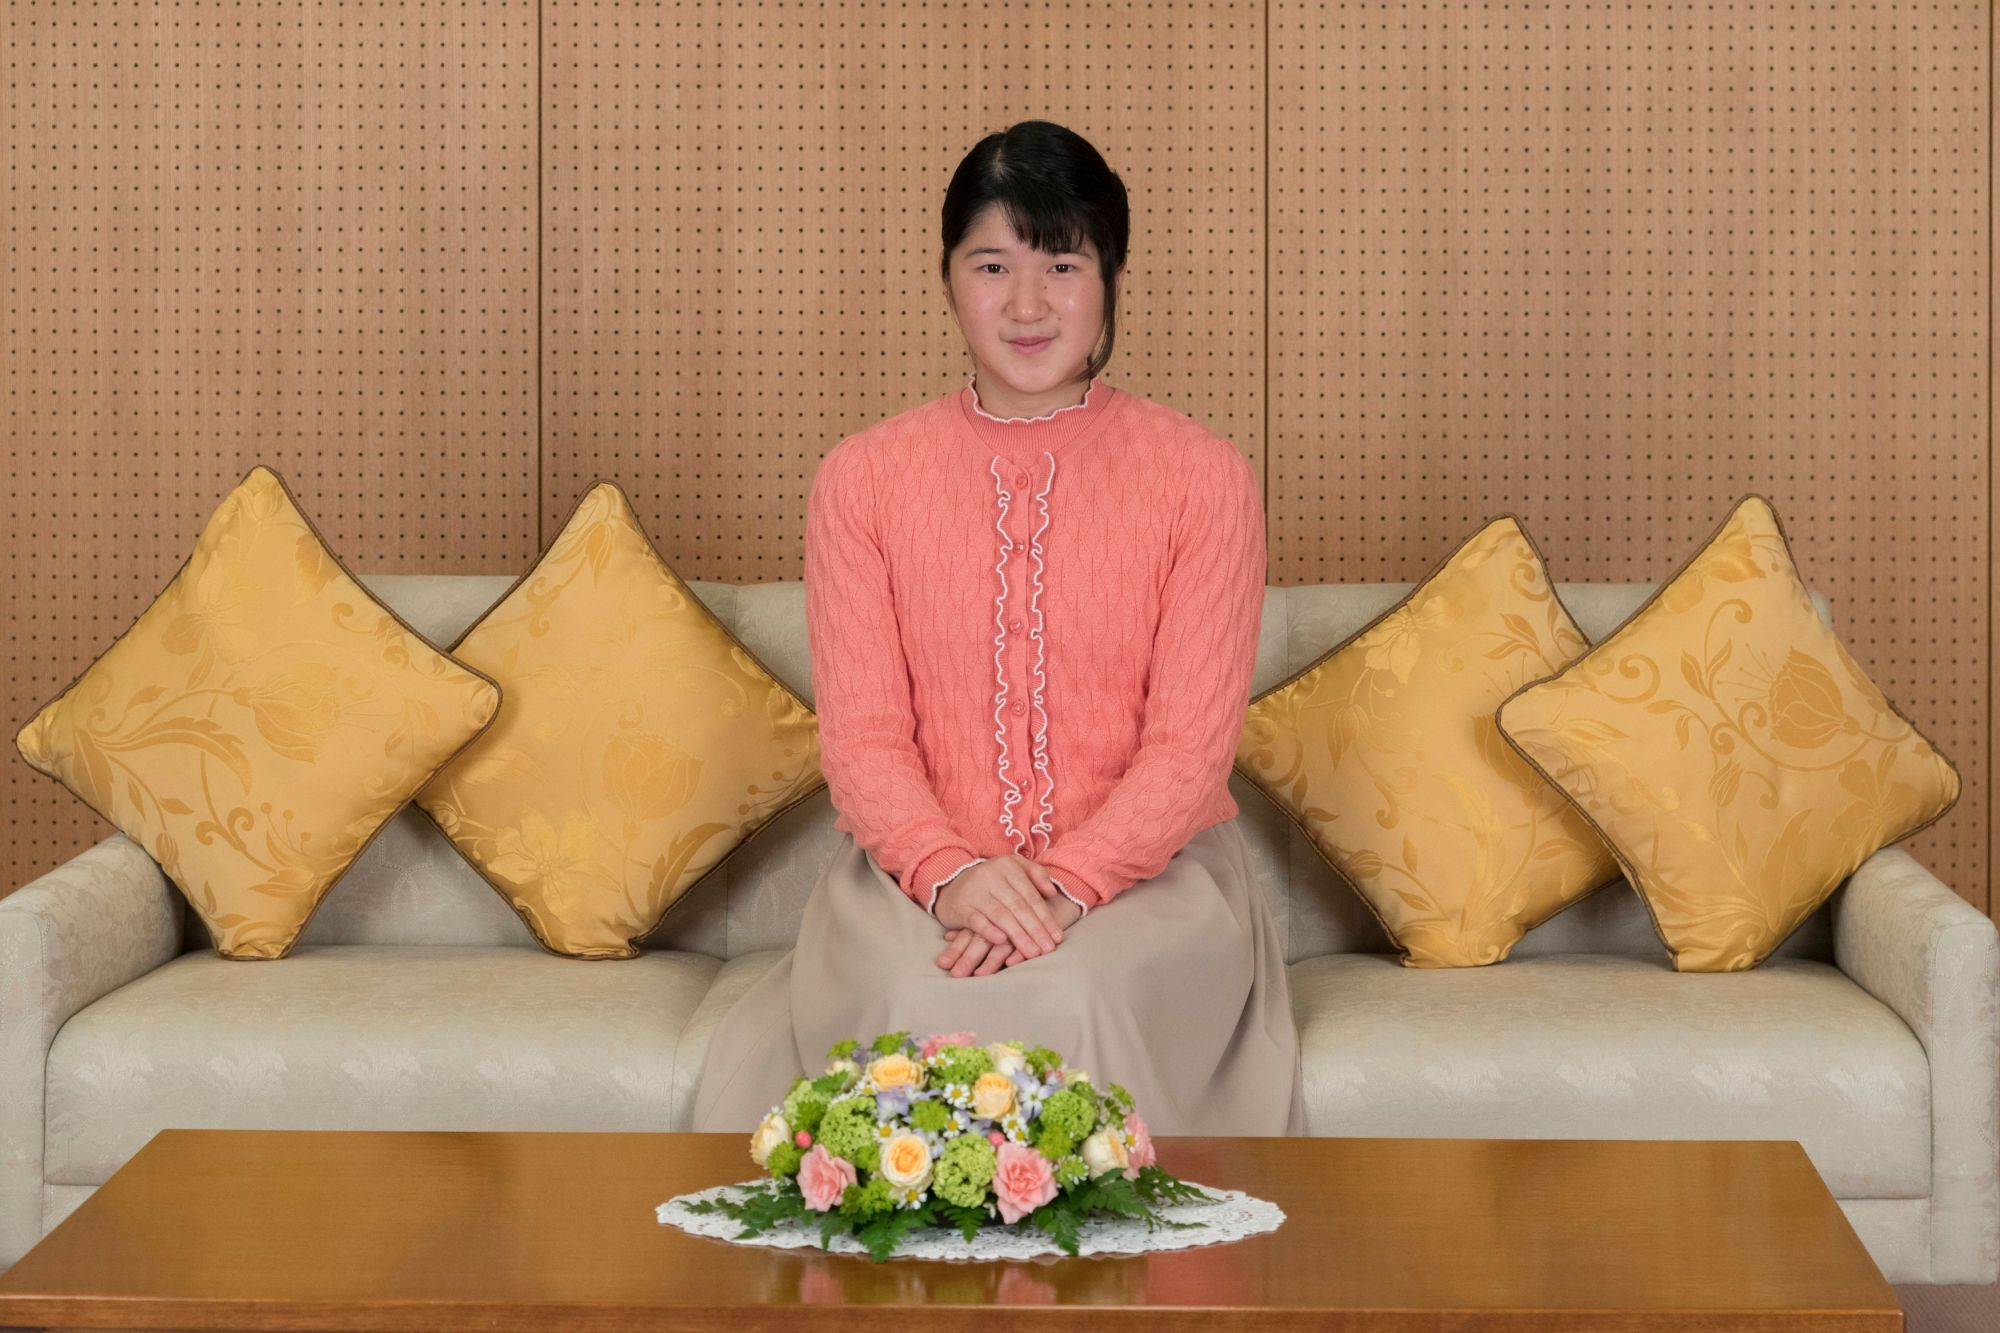 Japan's Princess Aiko talks with her father Crown Prince Naruhito about her school trip at Togu Palace in Tokyo, Japan, in this handout photo